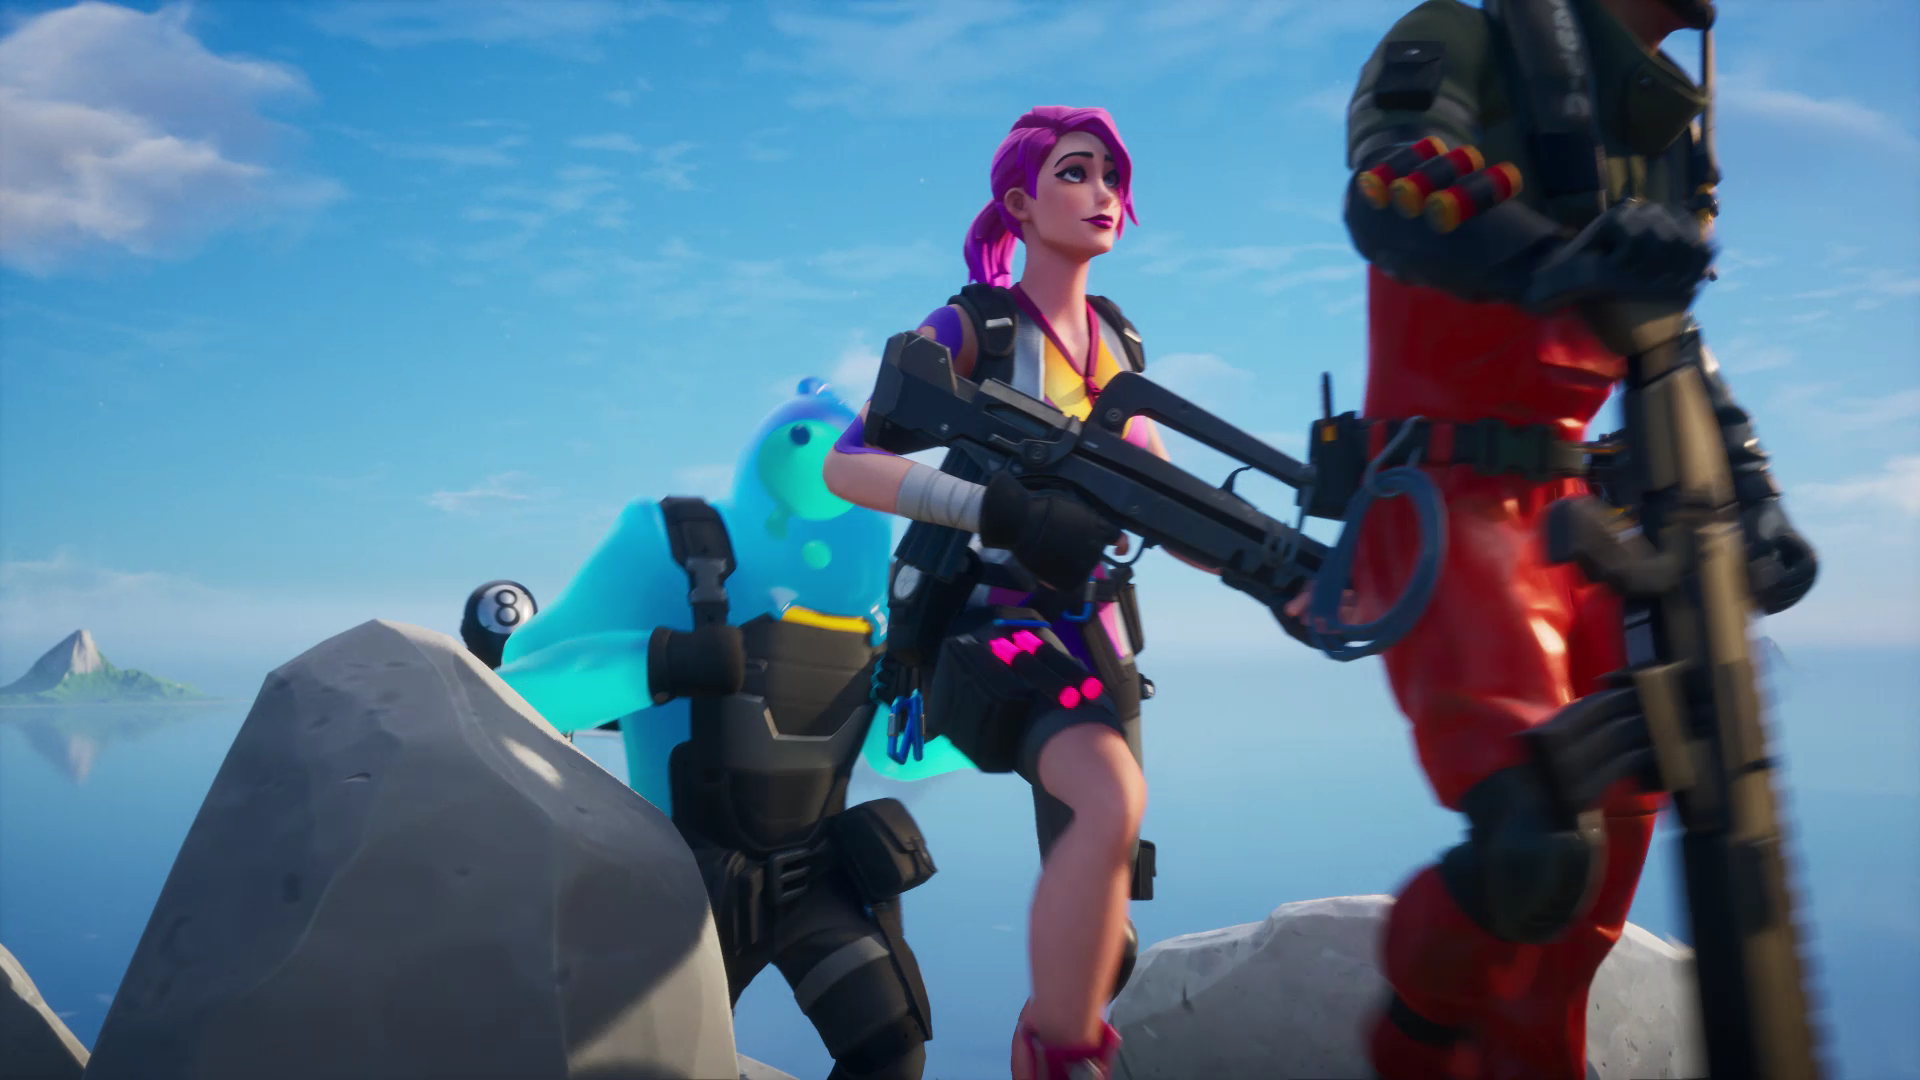 Fortnite Xbox One Epic Games Wallpaper Resolution 1920x1080 Id 194856 Wallha Com